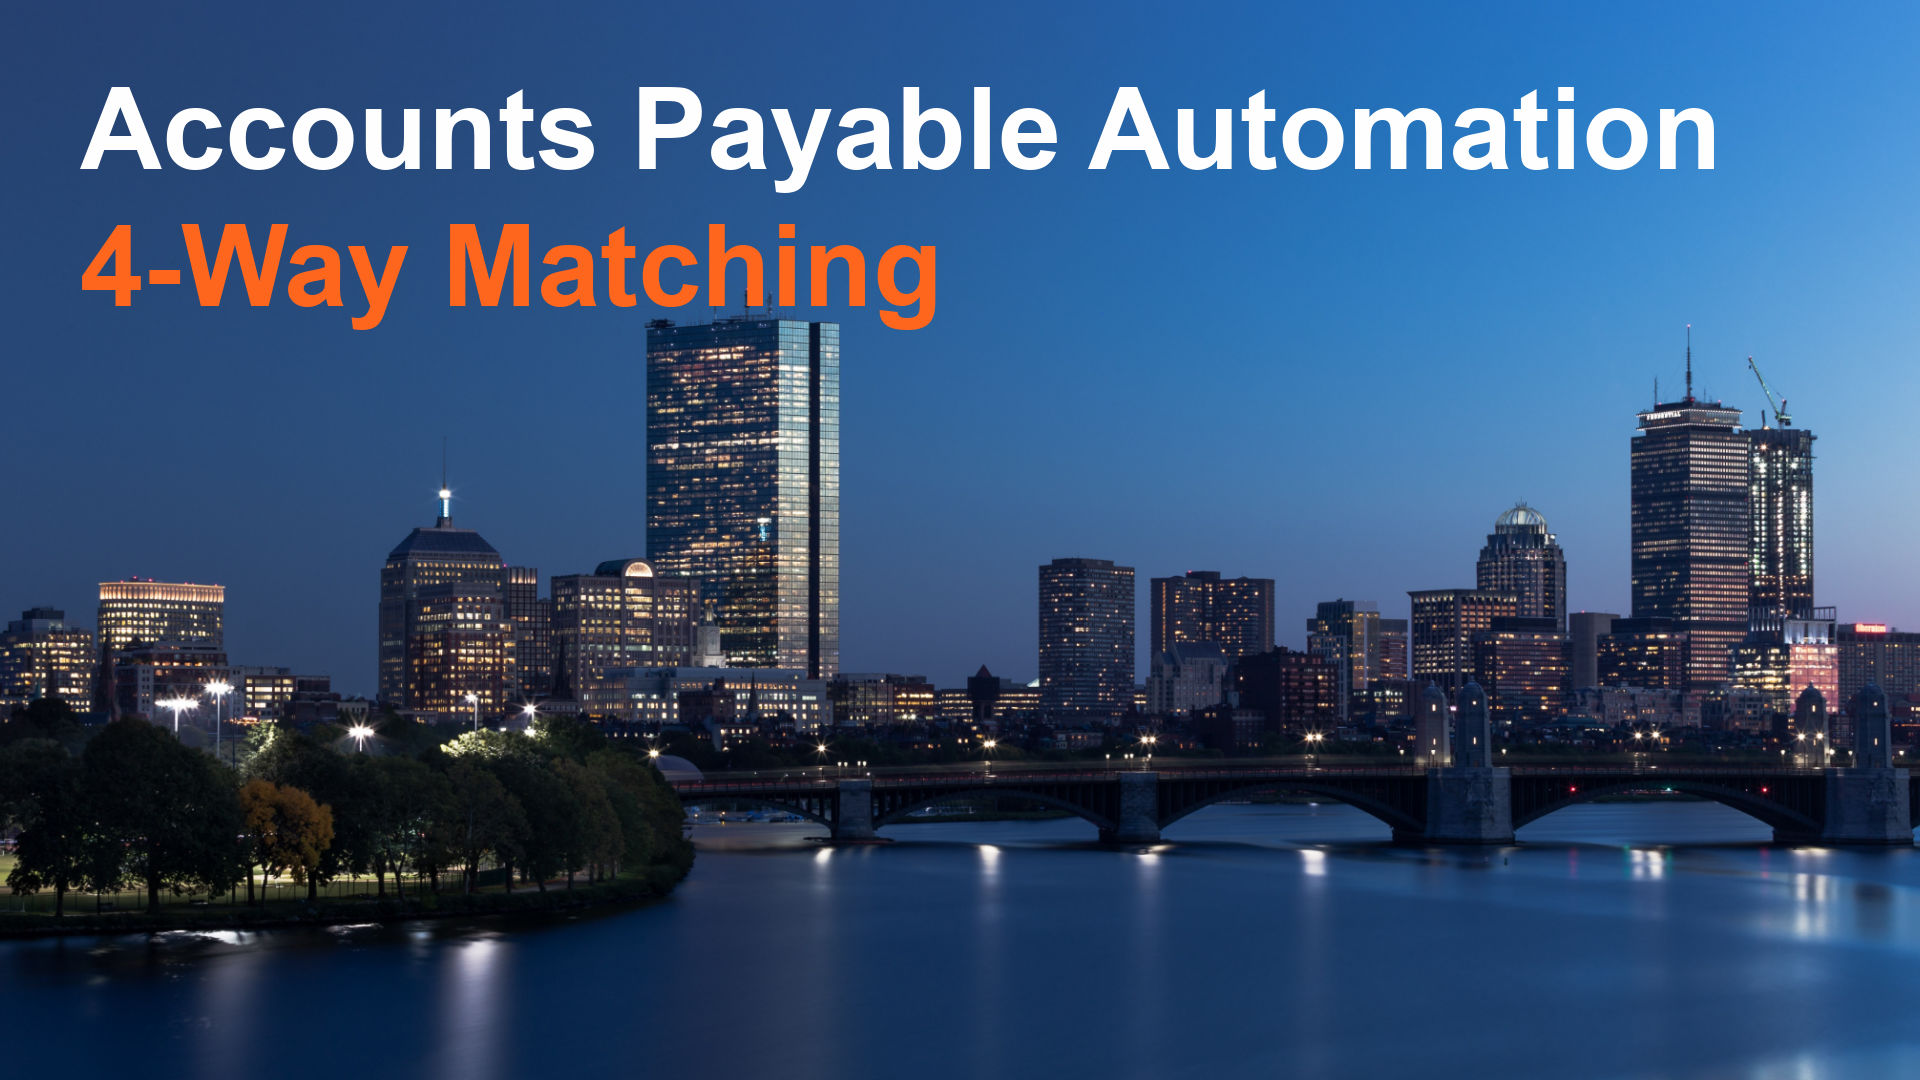 Accounts Payable Automation 4-Way Matching